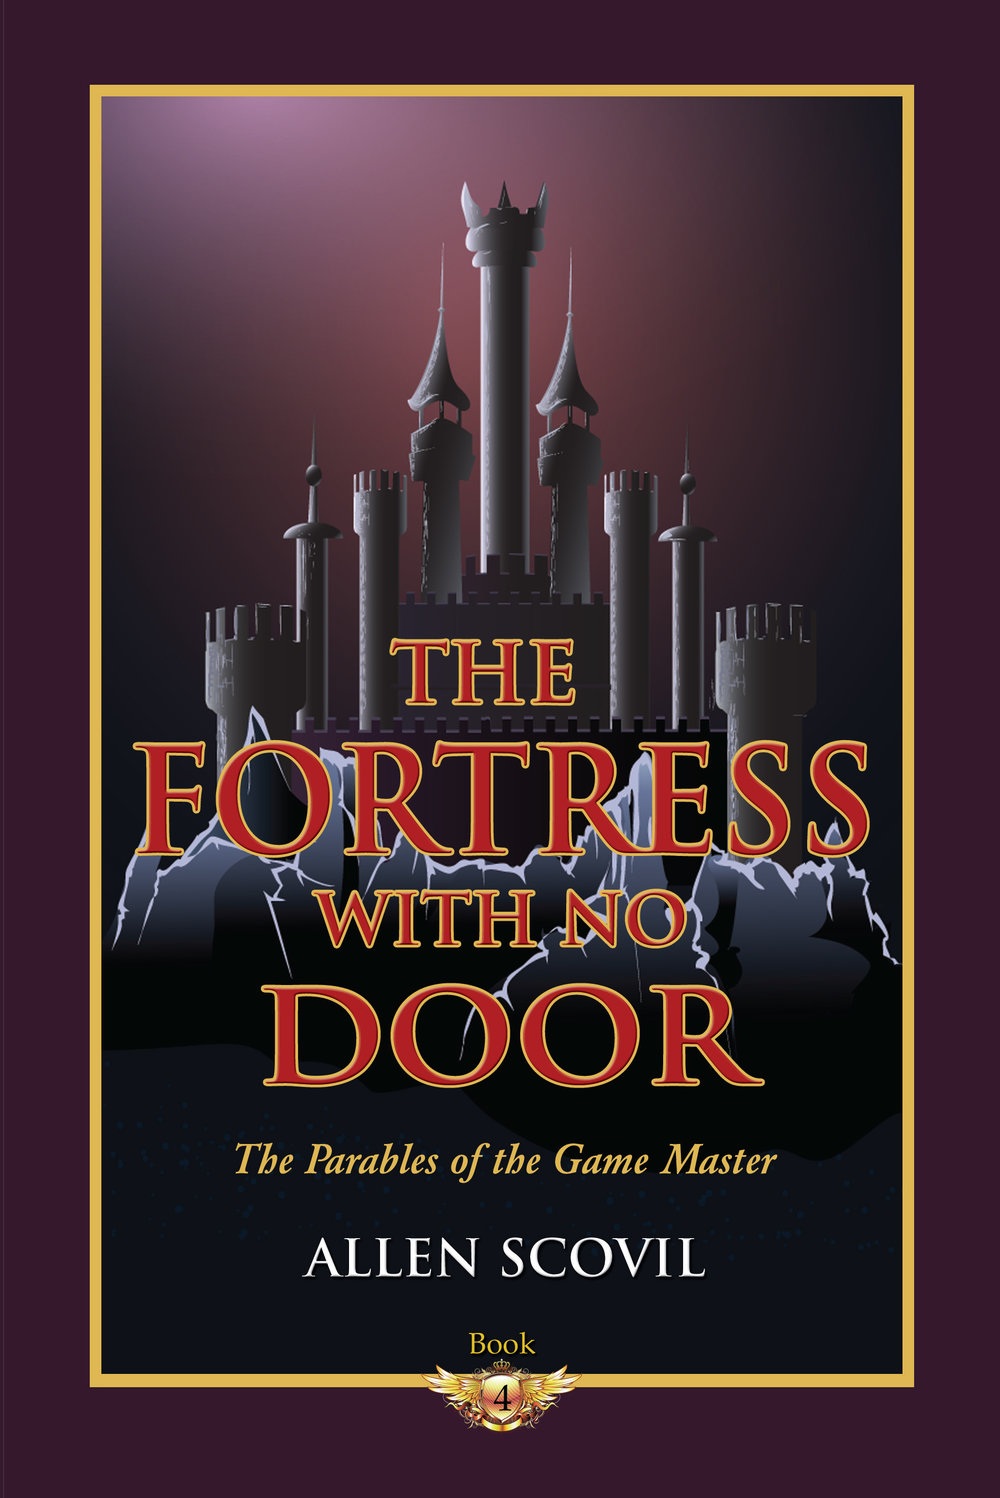 Book Four - The Fortress With No DoorArthur Pye finds himself in Rick's Land of the Heart; but where is Rick? Finally locating Rick's fortress, Arthur is startled to discover that it has no way in—not a door or window in sight. Only after he performs a terrifying seven-day ritual does the outer wall come down and allow him to pull the reluctant Rick out to play his game. The game requires Rick to get to the Game Master on the Mount of Omnia; but that mountain is surrounded by the Abyss of Nil, which is filled with all the lies that he has made a part of his life. Even as his con-science hounds him about those lies, he latches onto an alternate quest, to seek out a dragon to carry him over the Abyss rather than go through it. The dragon sends Rick out to seek a black gem it claims to yearn for called the Heart of Darkness. However, in the end the beast betrays him, throwing him into the Abyss, and bringing him to an abrupt 'game over.' Will the Game Master be able to find a way to reach Rick now that he's back in the real world? Or is Rick doomed to remain trapped in the lies that flood his Abyss of Nil?